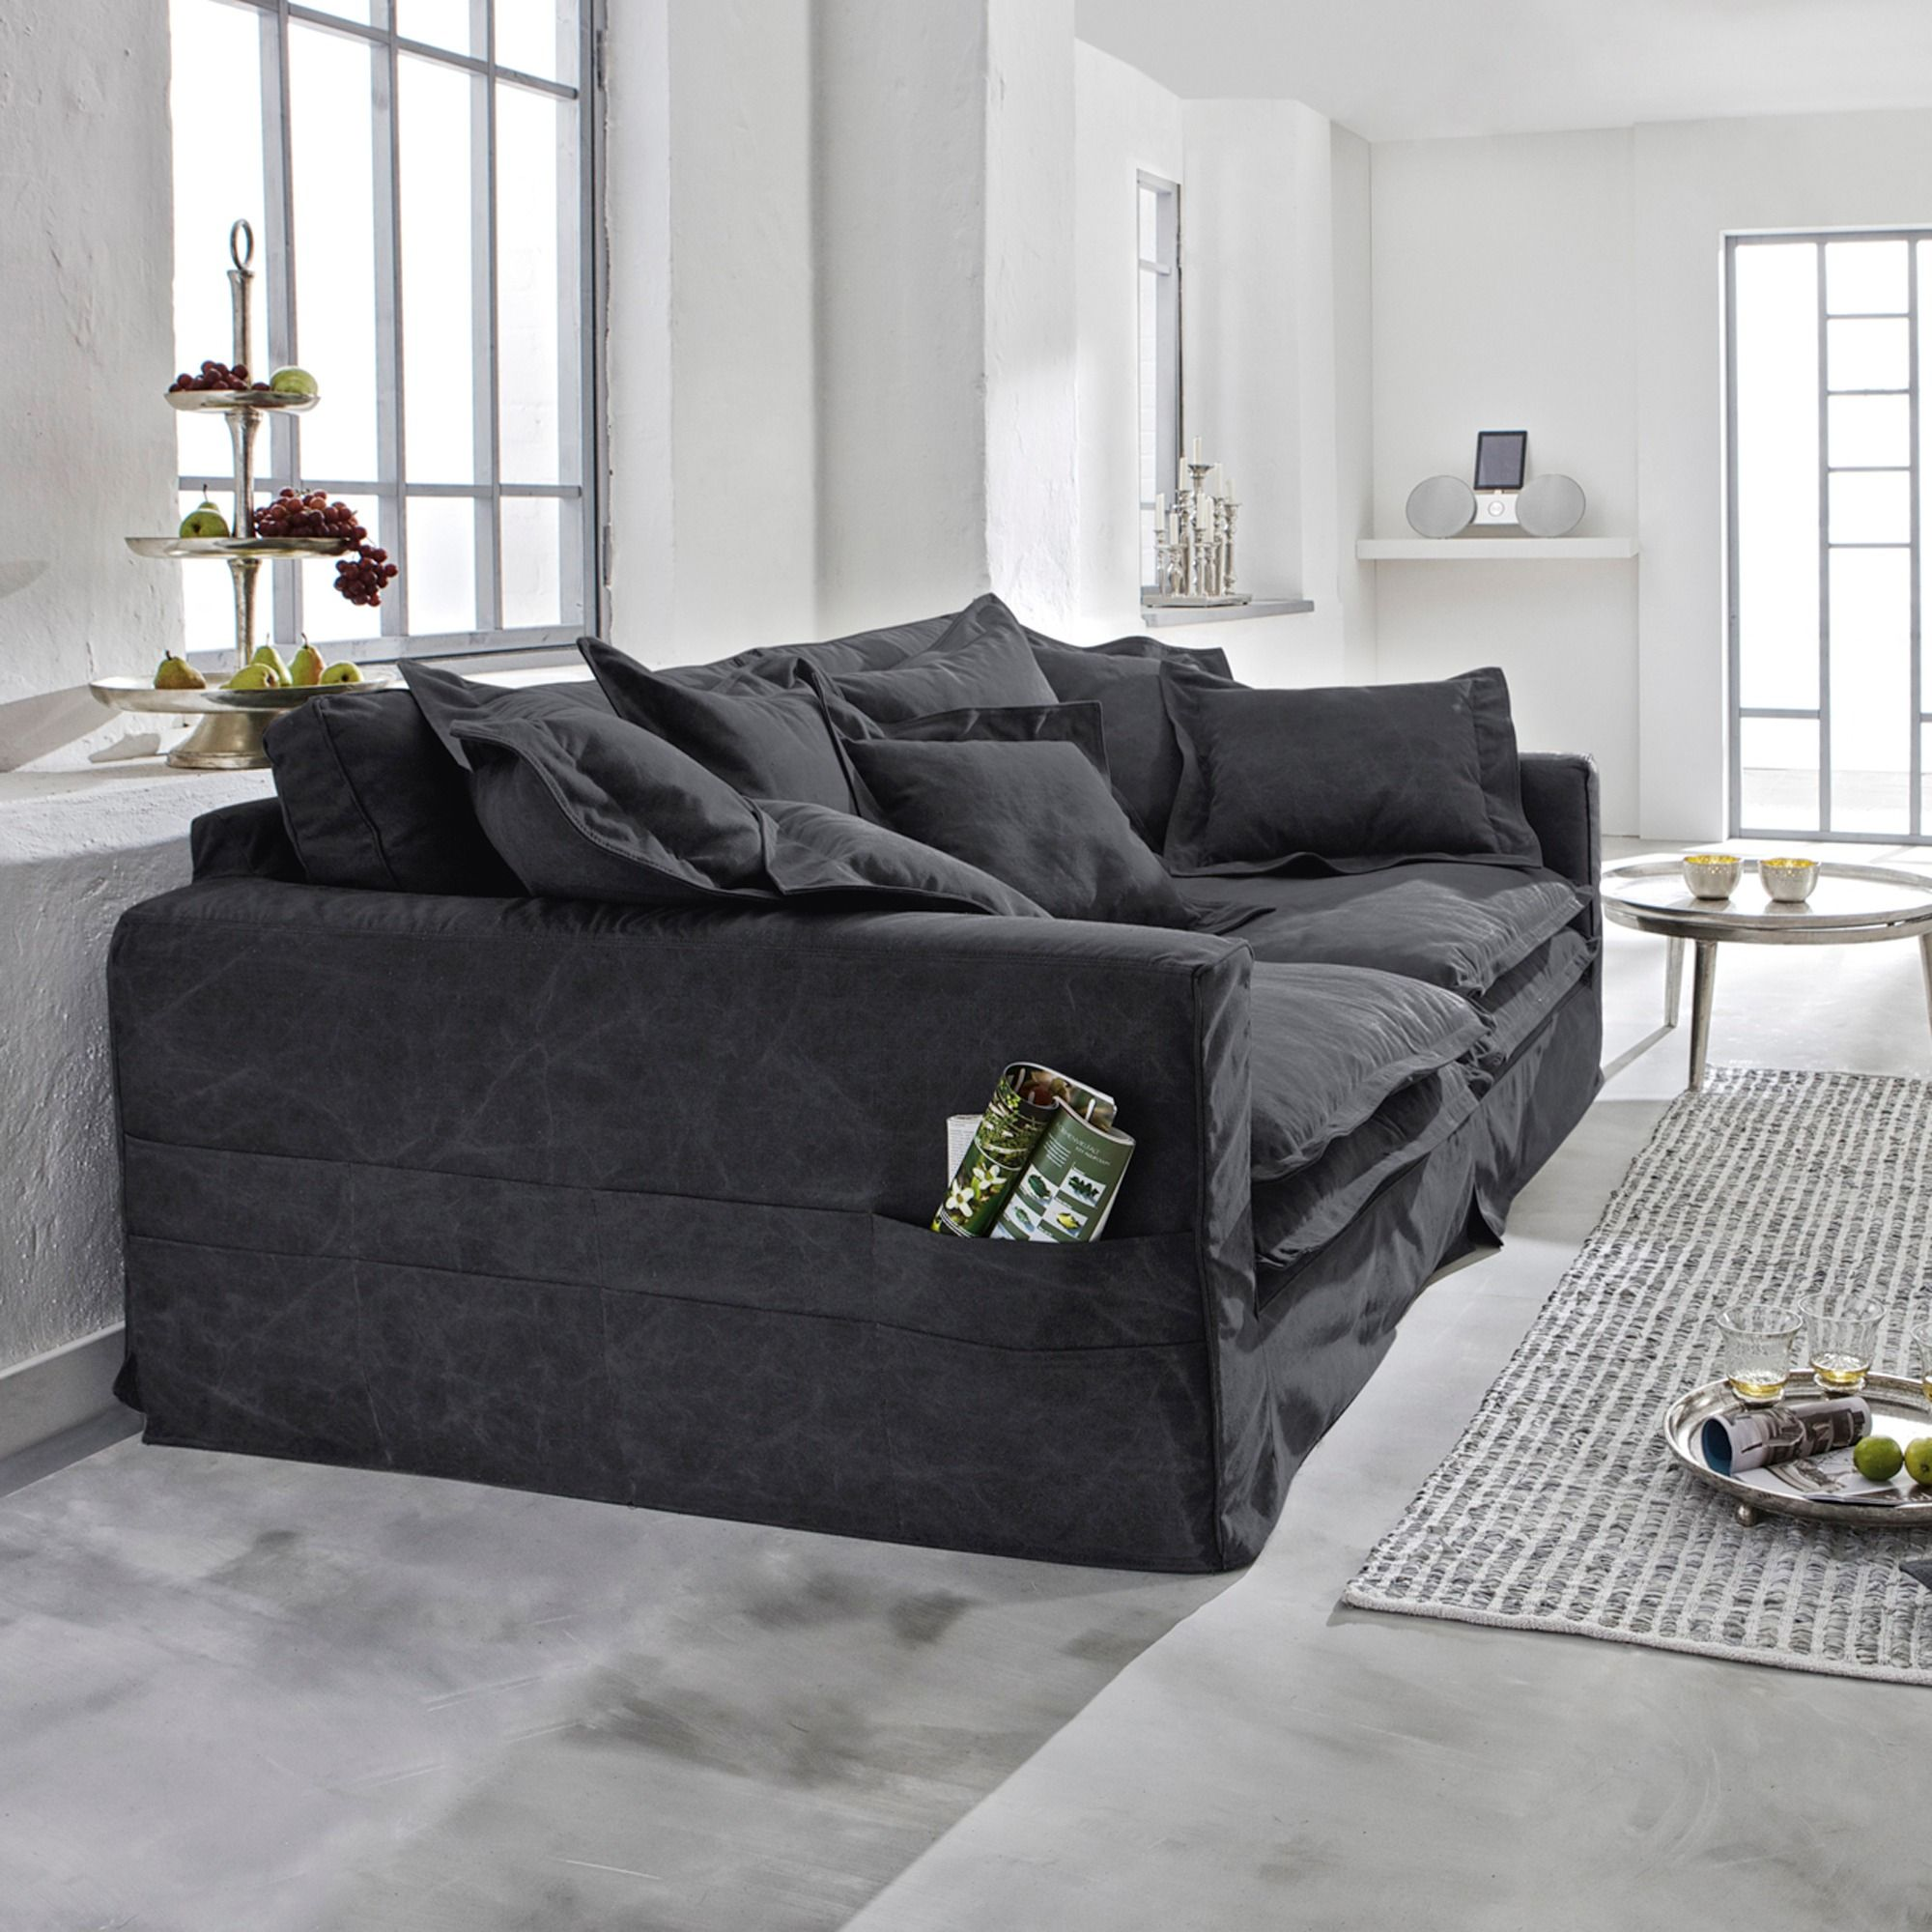 xxl sofa carcassonne online kaufen mirabeau for the home pinterest. Black Bedroom Furniture Sets. Home Design Ideas